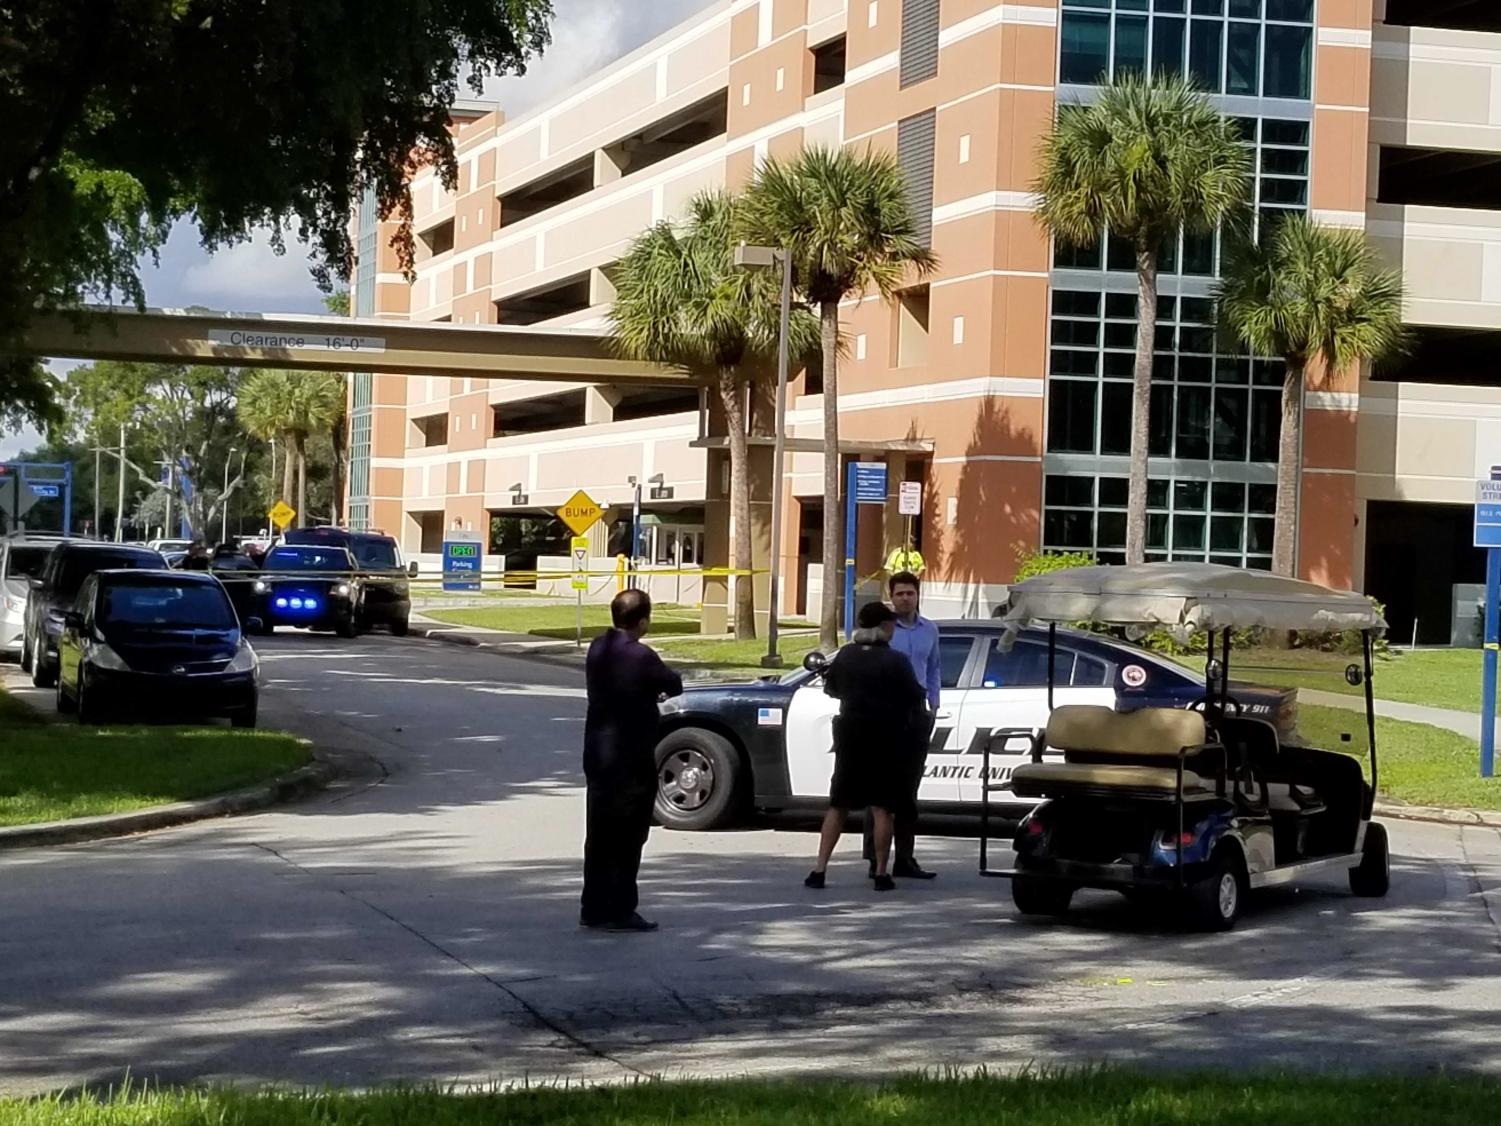 Police responding to the death on campus Tuesday morning. Photo by Kimberly Swan